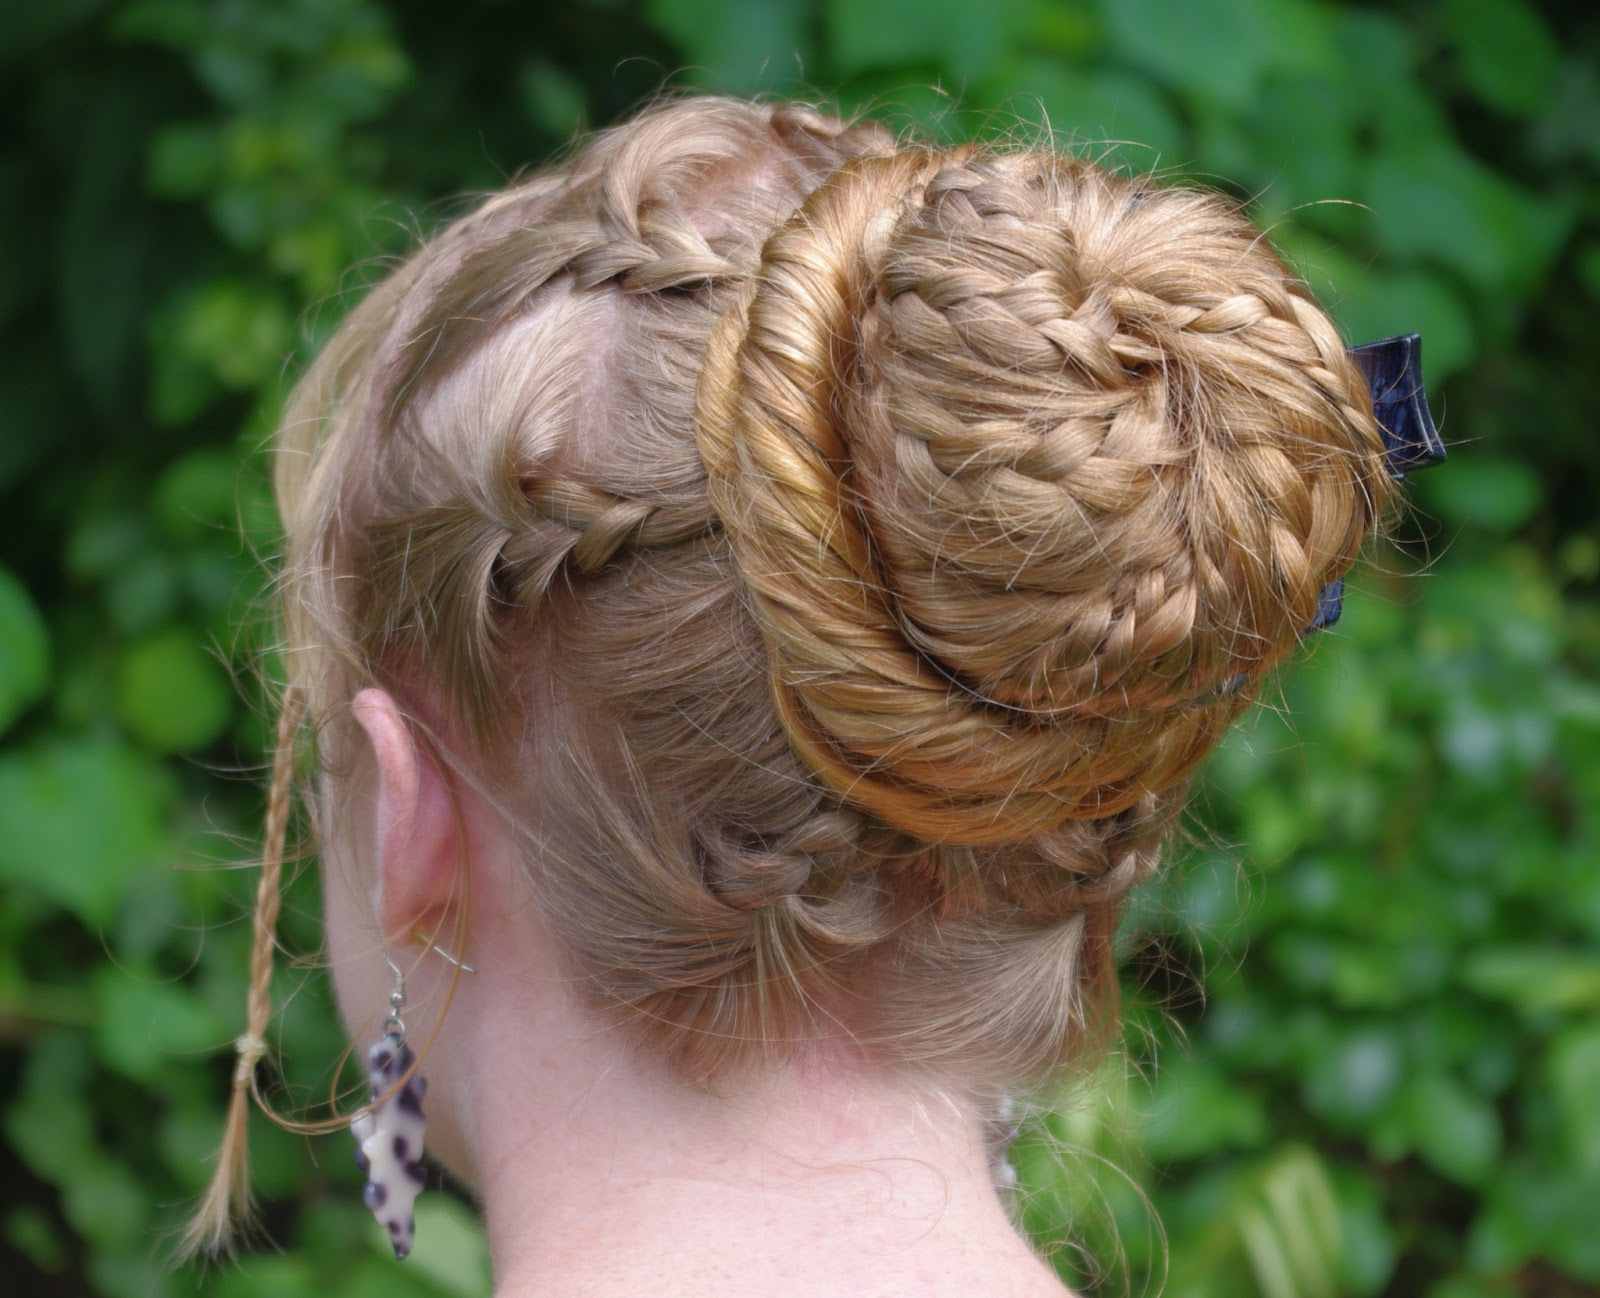 Well Known Cinnamon Bun Braided Hairstyles Intended For Braids & Hairstyles For Super Long Hair: Cinnamon Bun With (View 4 of 20)